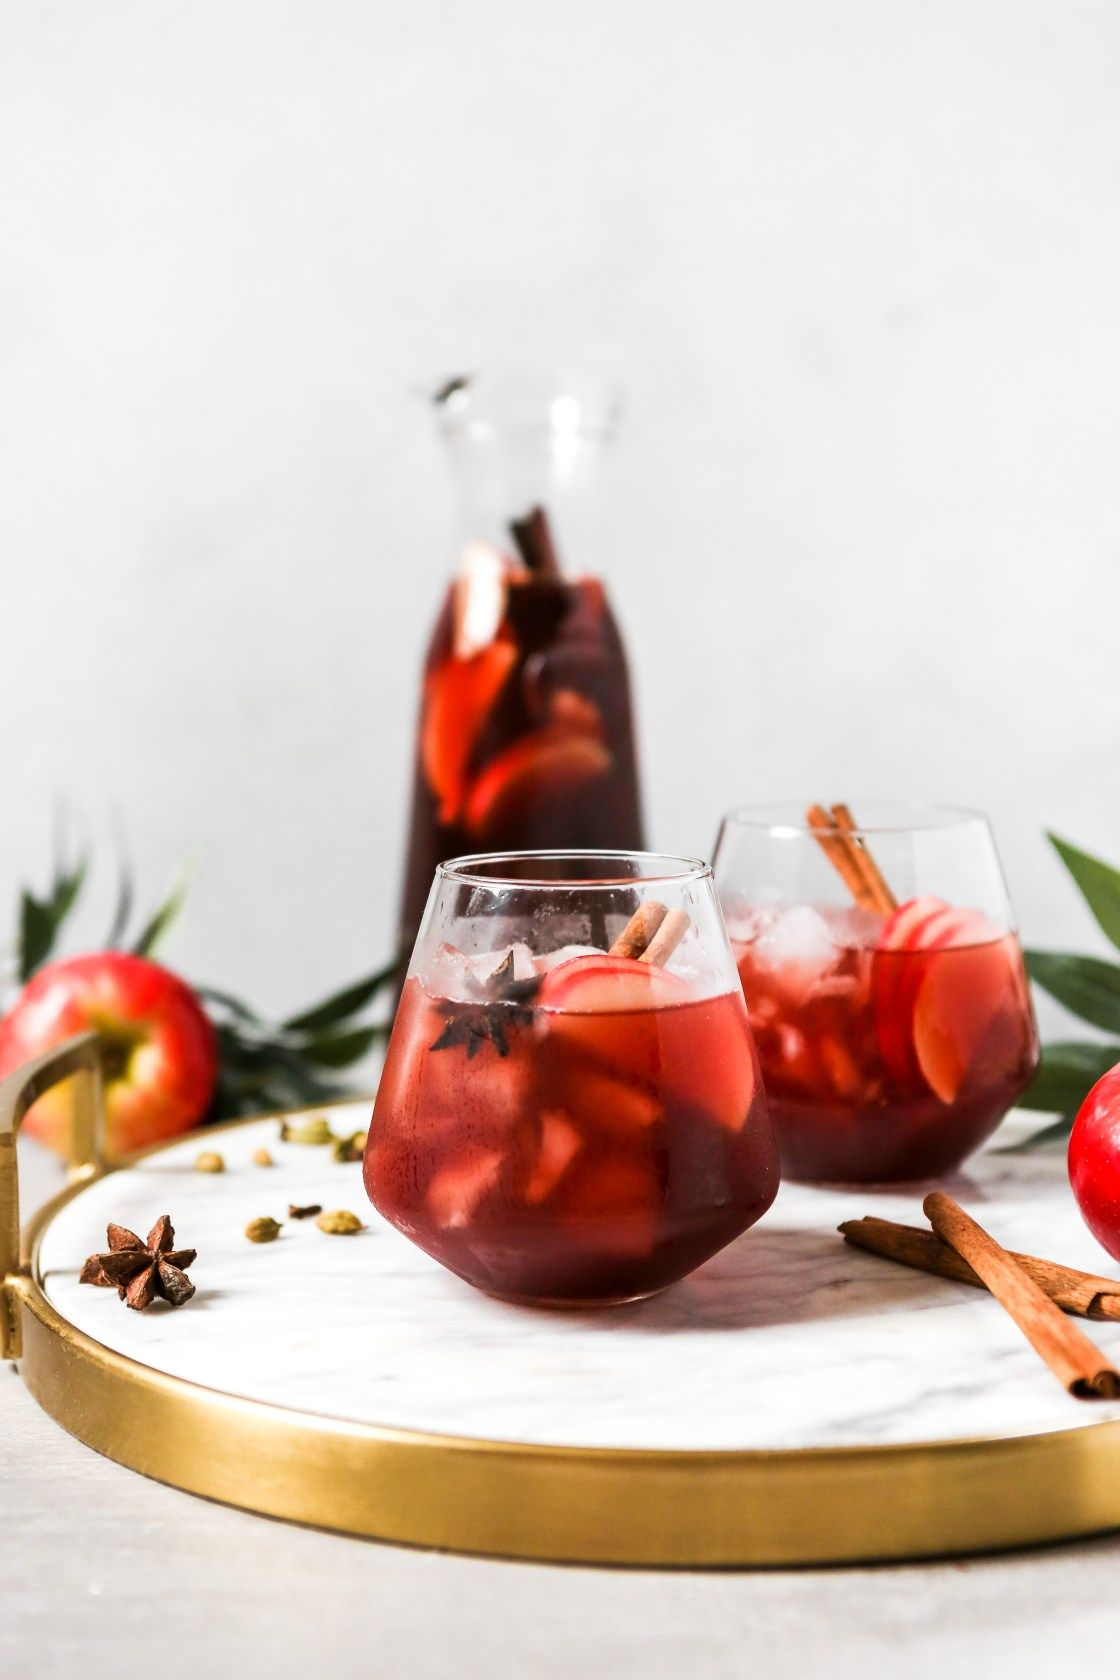 Autumn Red Wine Apple Cider Sangria Zestful Kitchen Recipe Apple Cider Sangria Apple Cider Sangria Recipe Cider Sangria